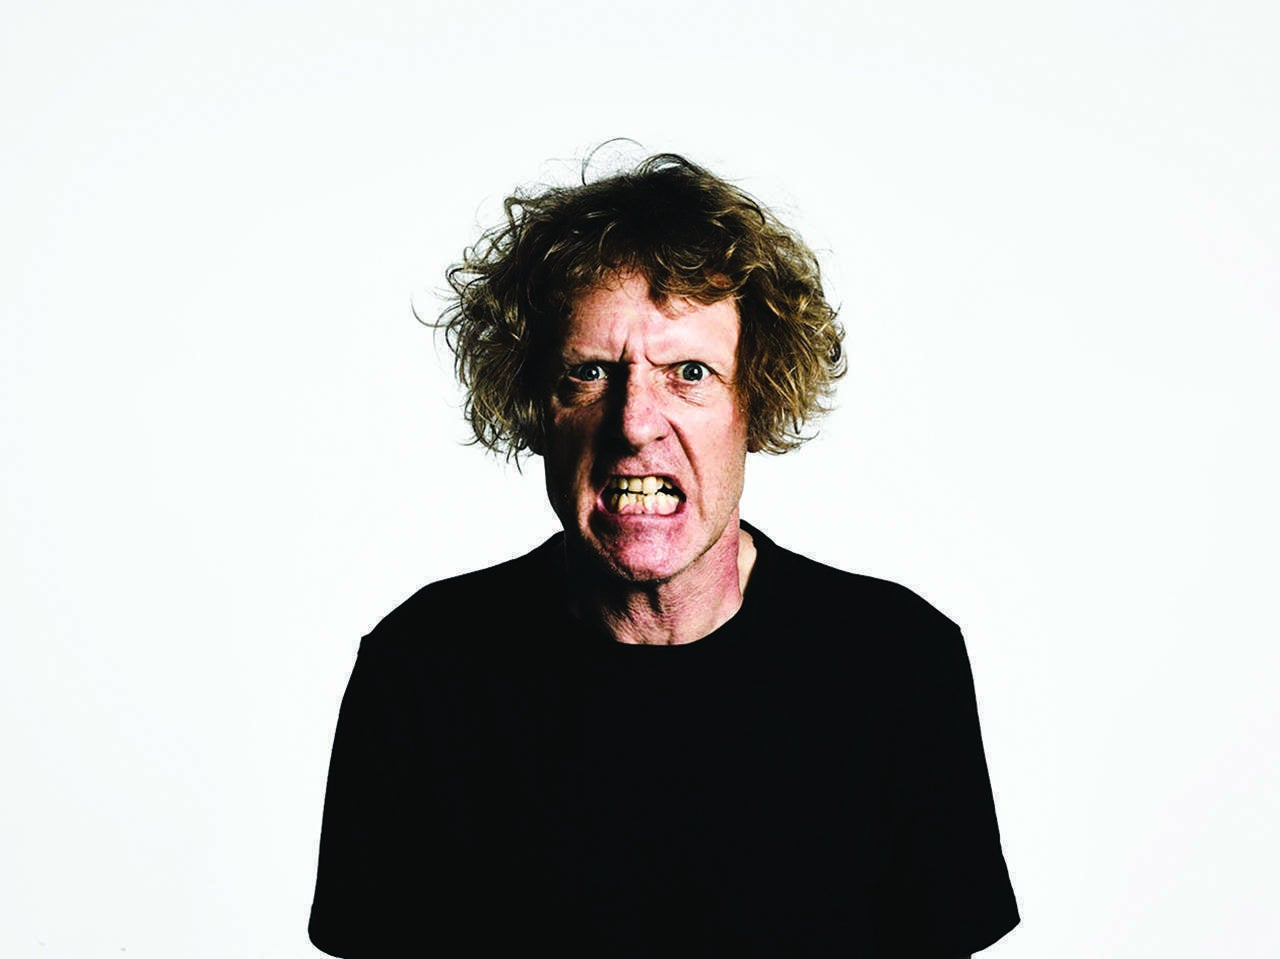 Whither big balls? Grayson Perry investigates masculinity better than anyone else on TV